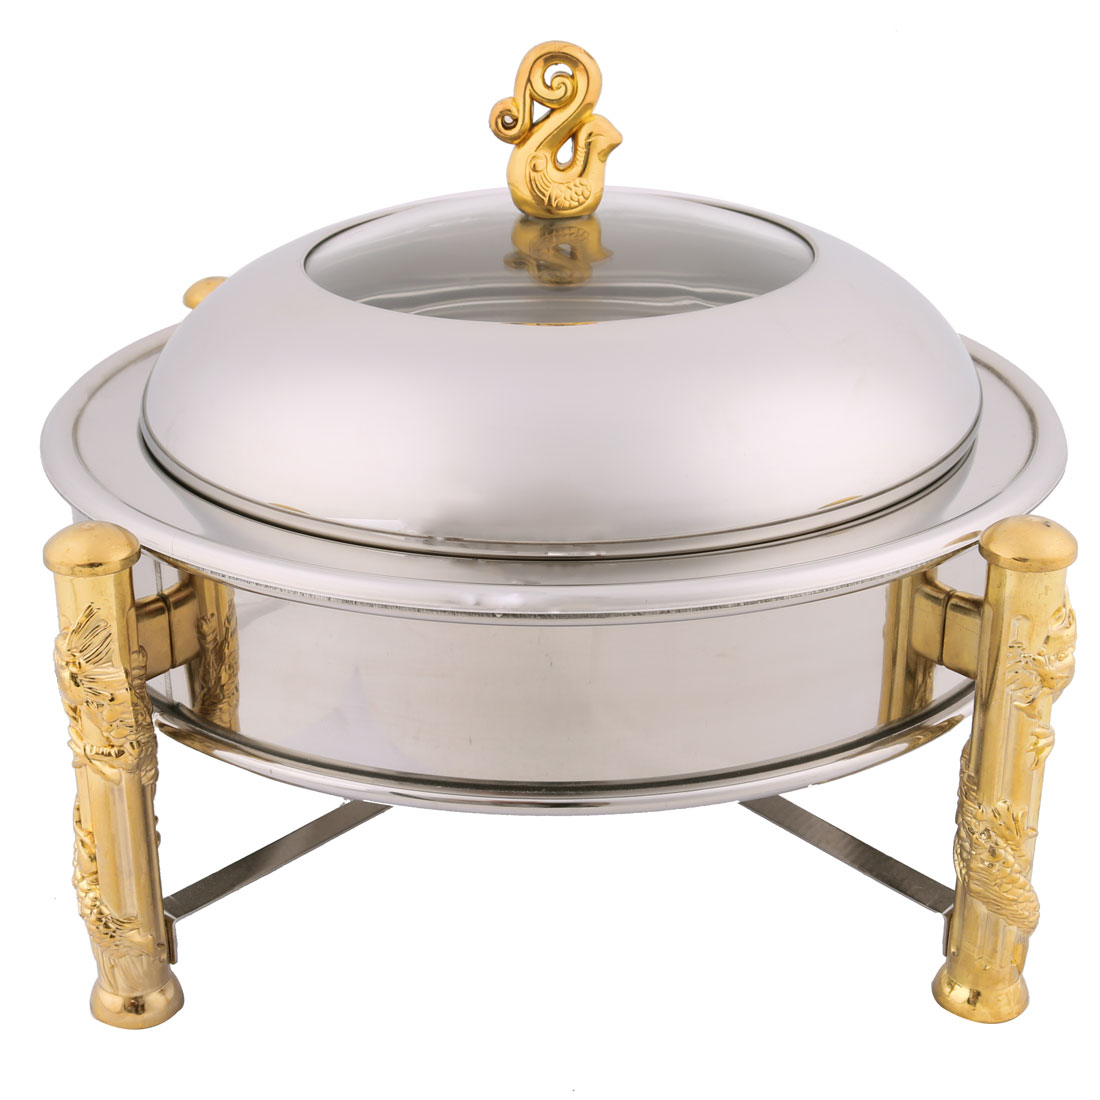 Picnic Kitchen Metal Round Cookware Dish Food Chafer Set Silver Tone 22cm Dia